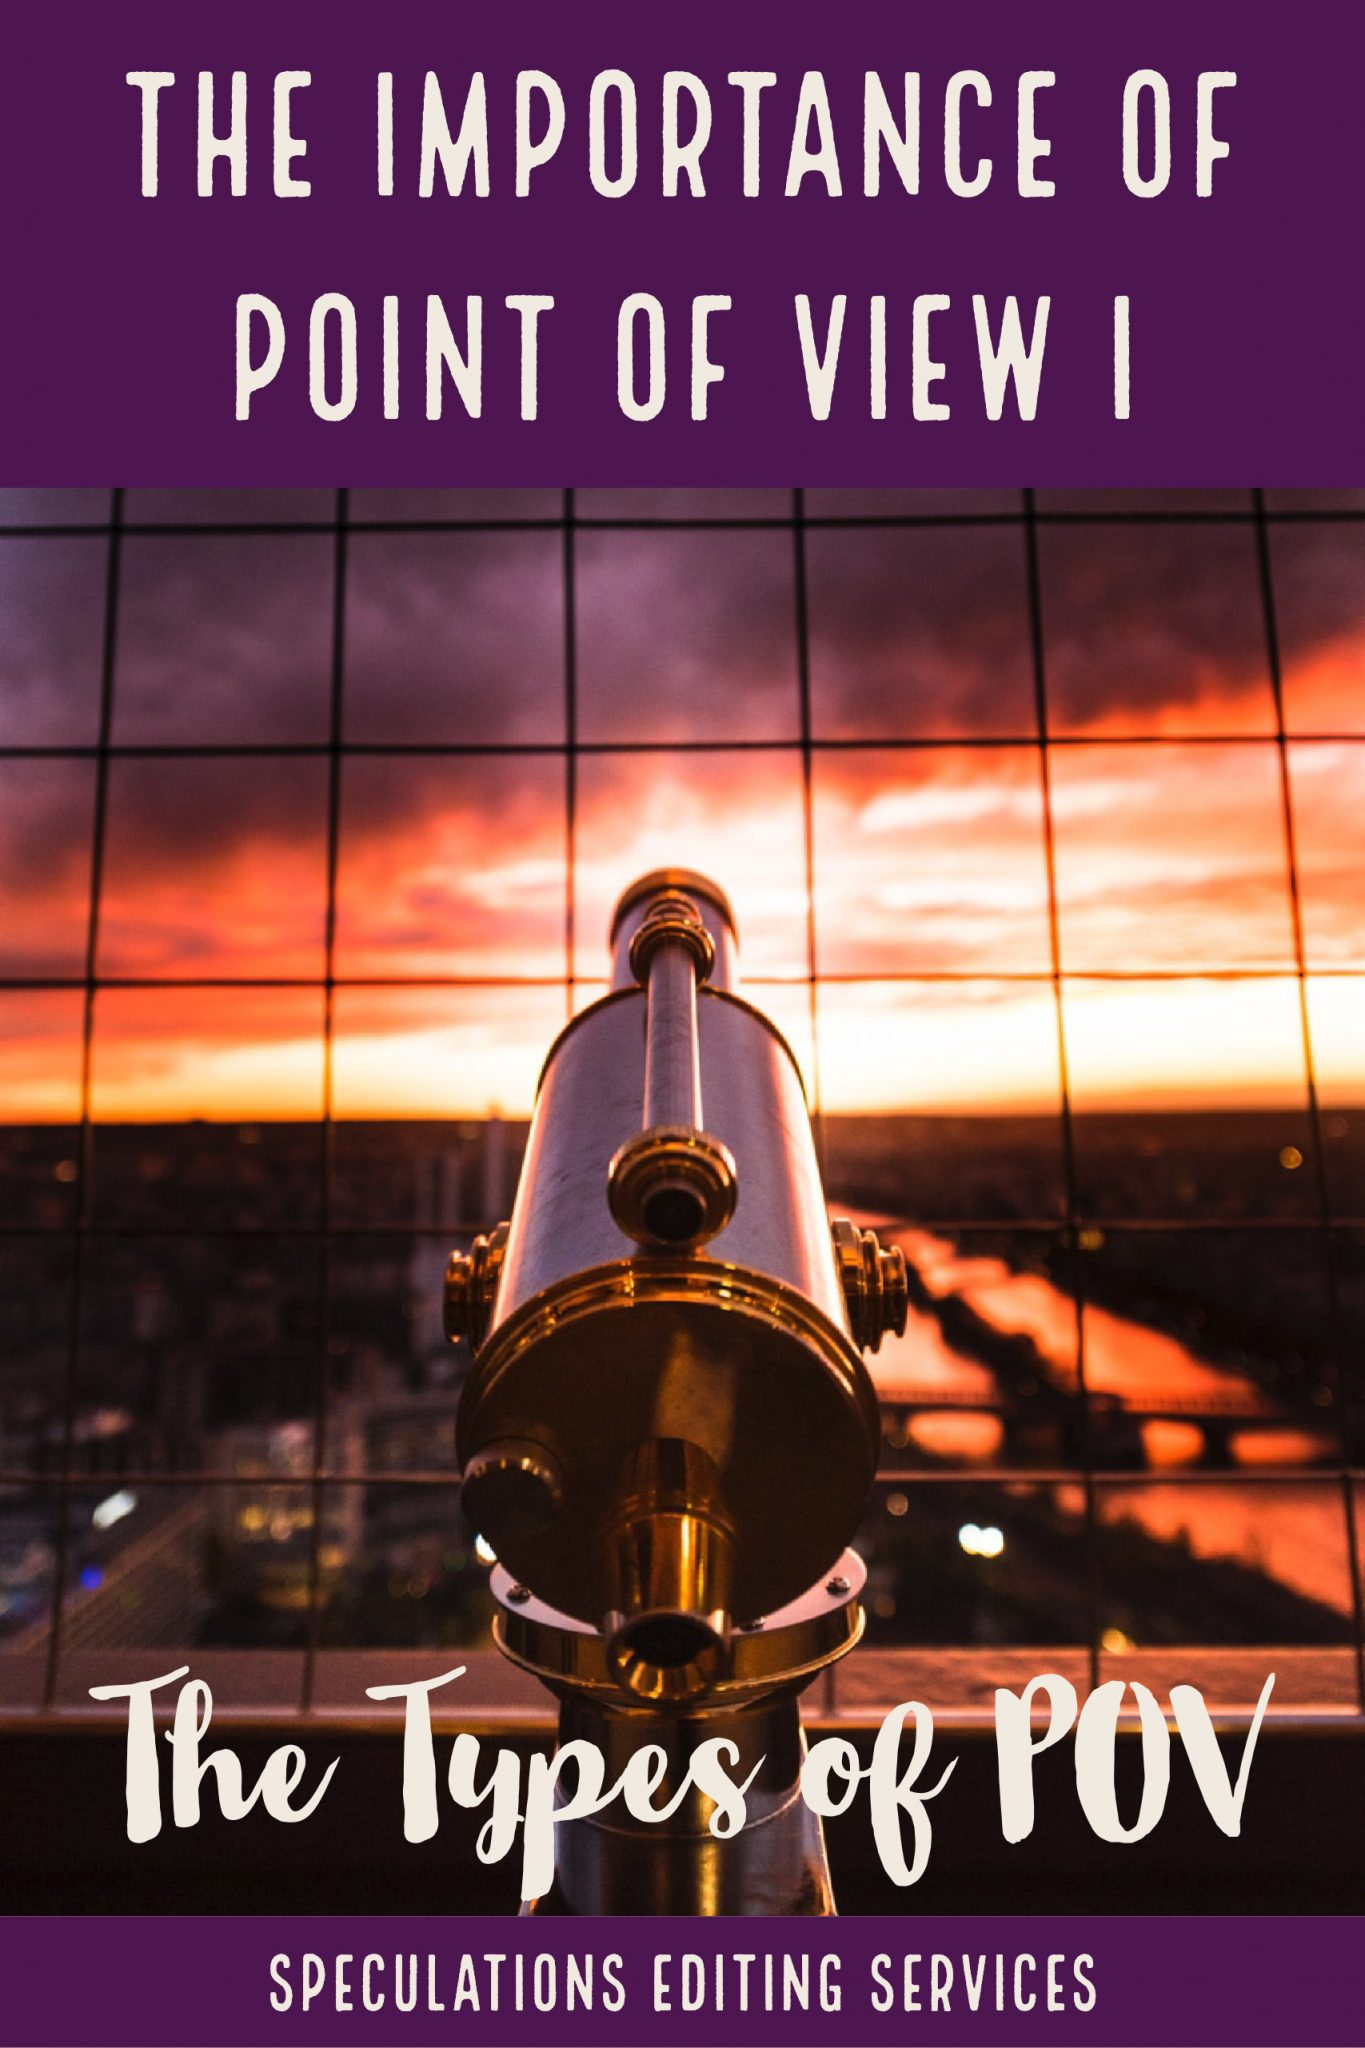 point of view, pov, pov types